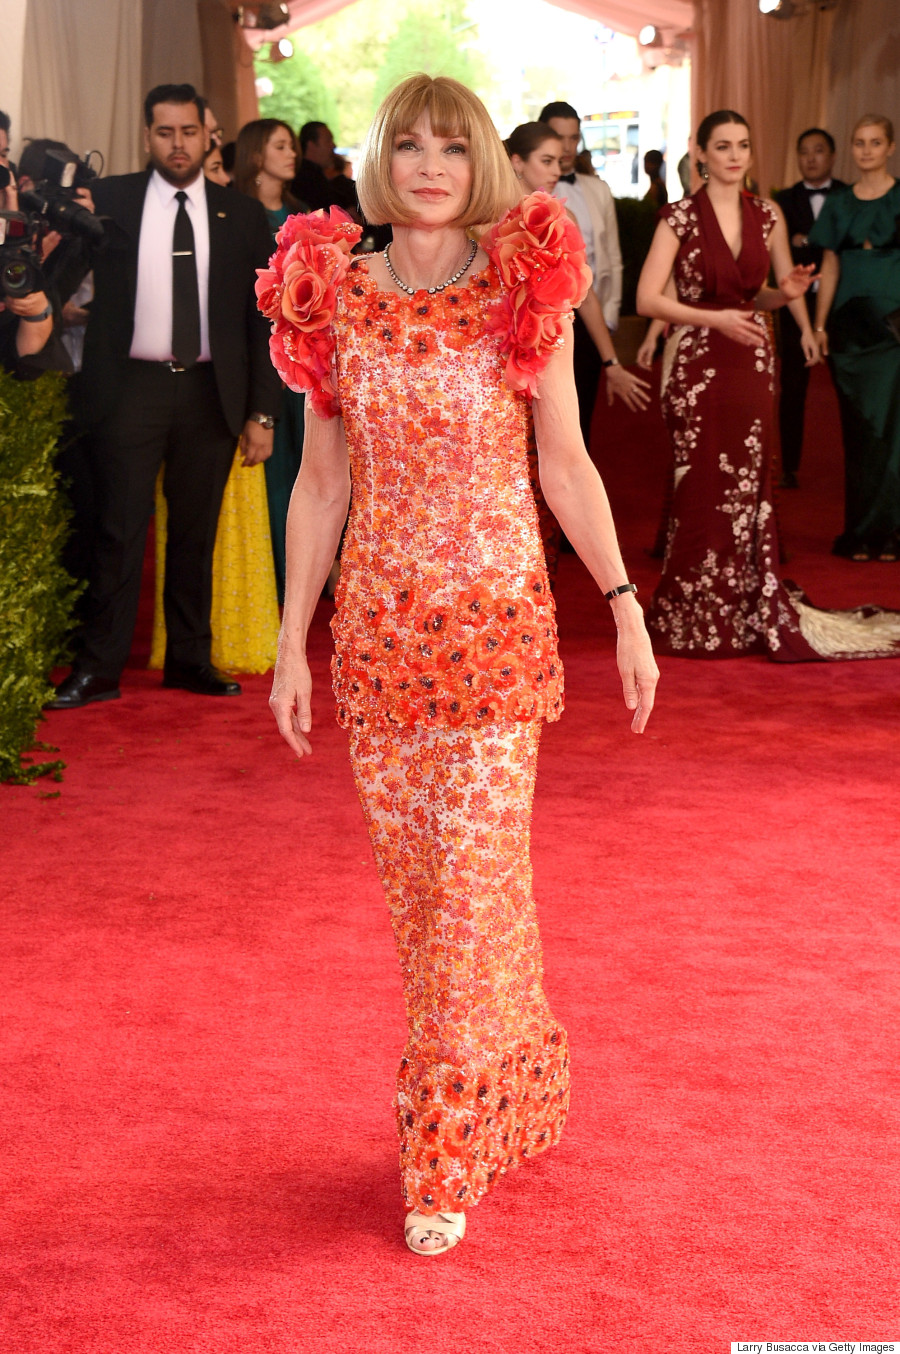 Kyler Wesp writes about the history and the foundation behind the Met Gala at the Metropolitan Museum of Art.